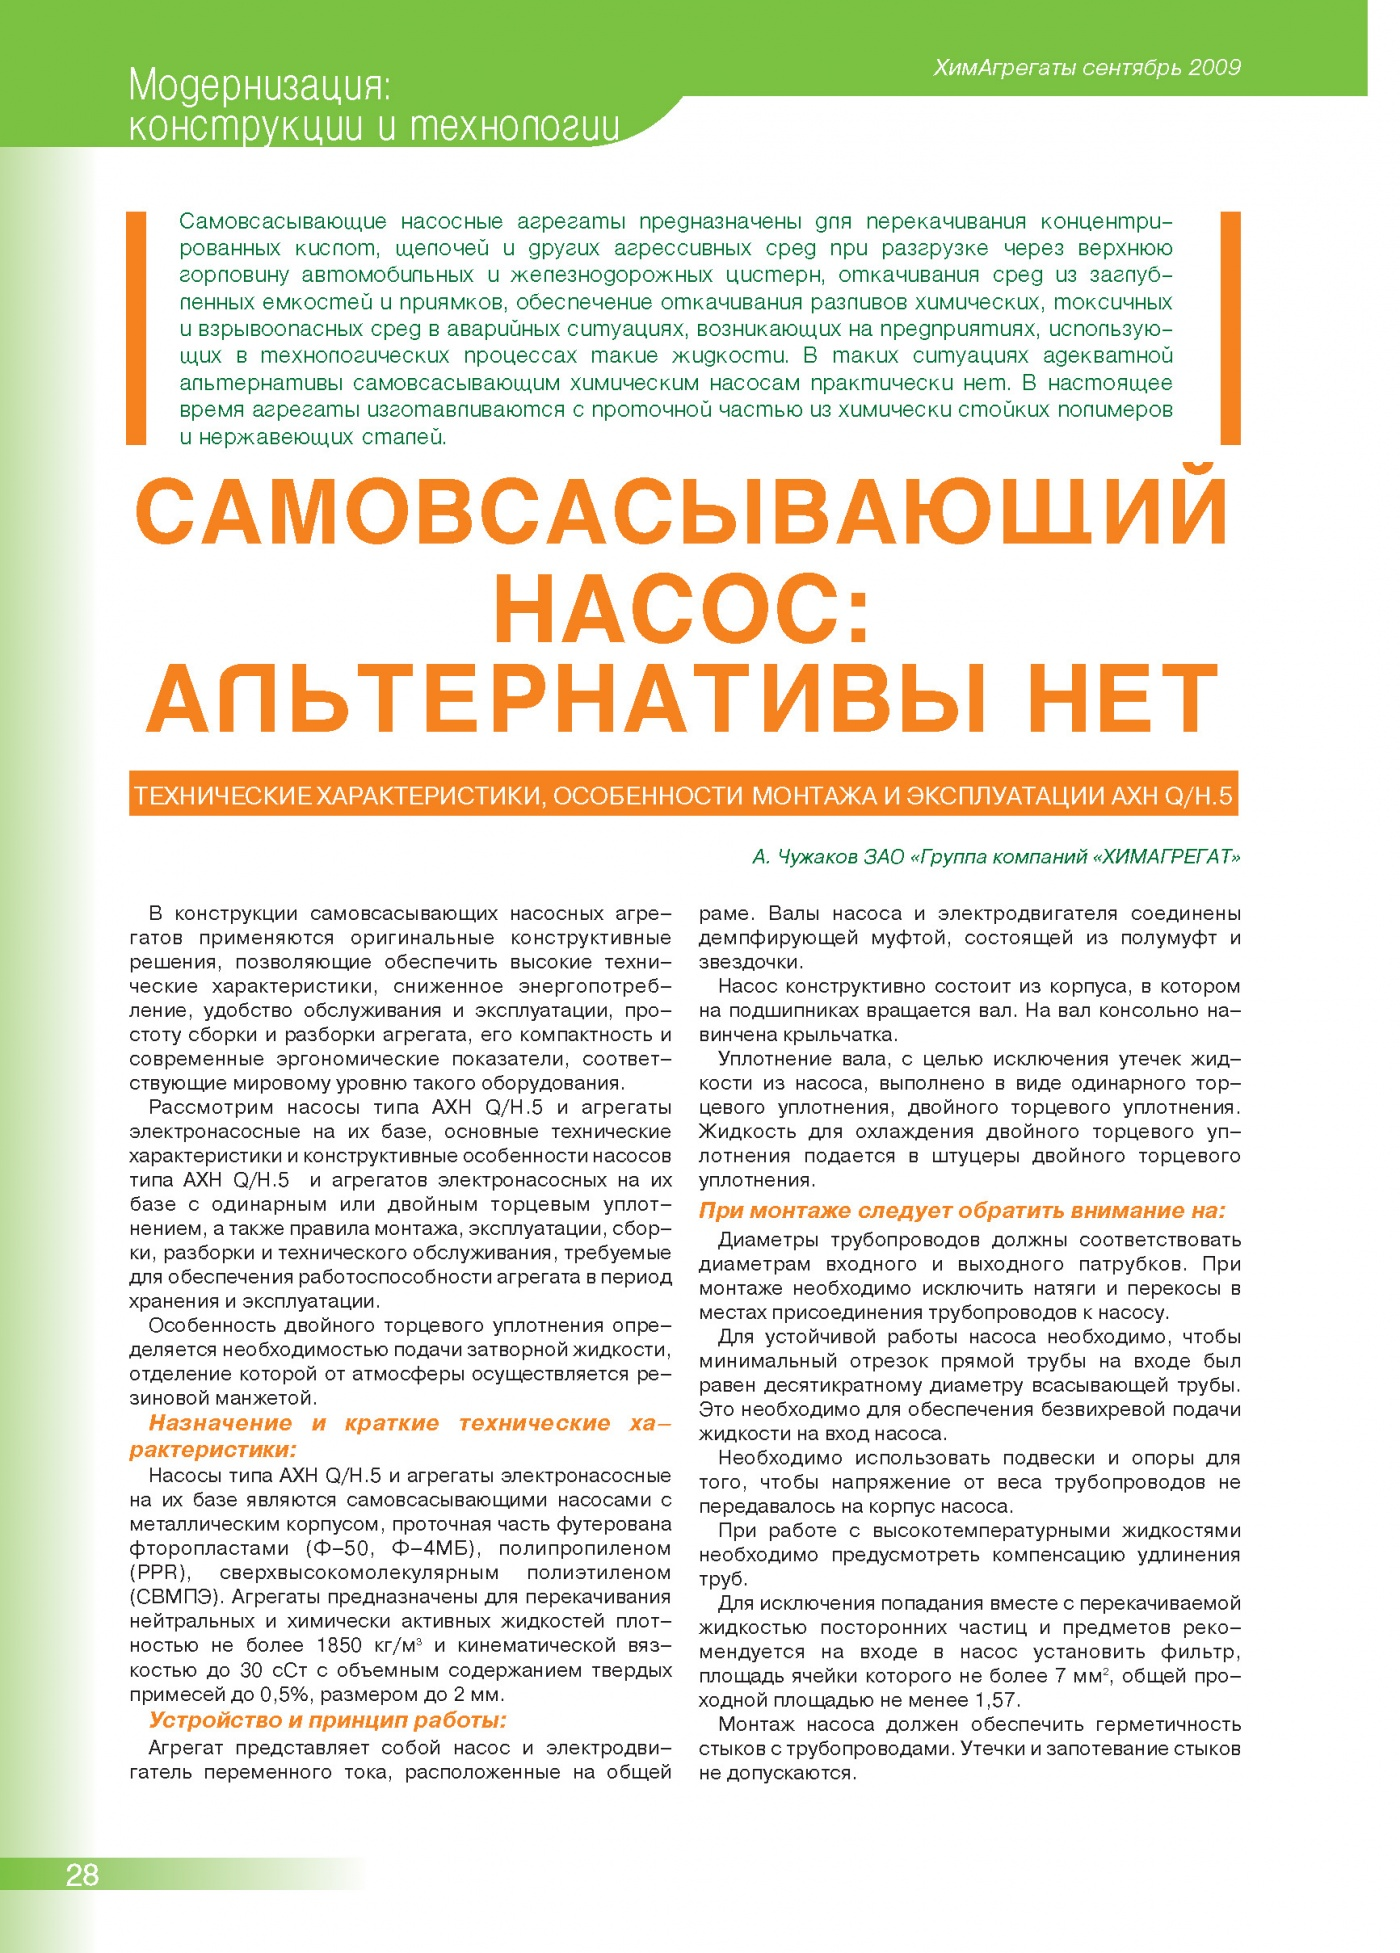 'CHEMAGREGATY', <br/>September, 2009